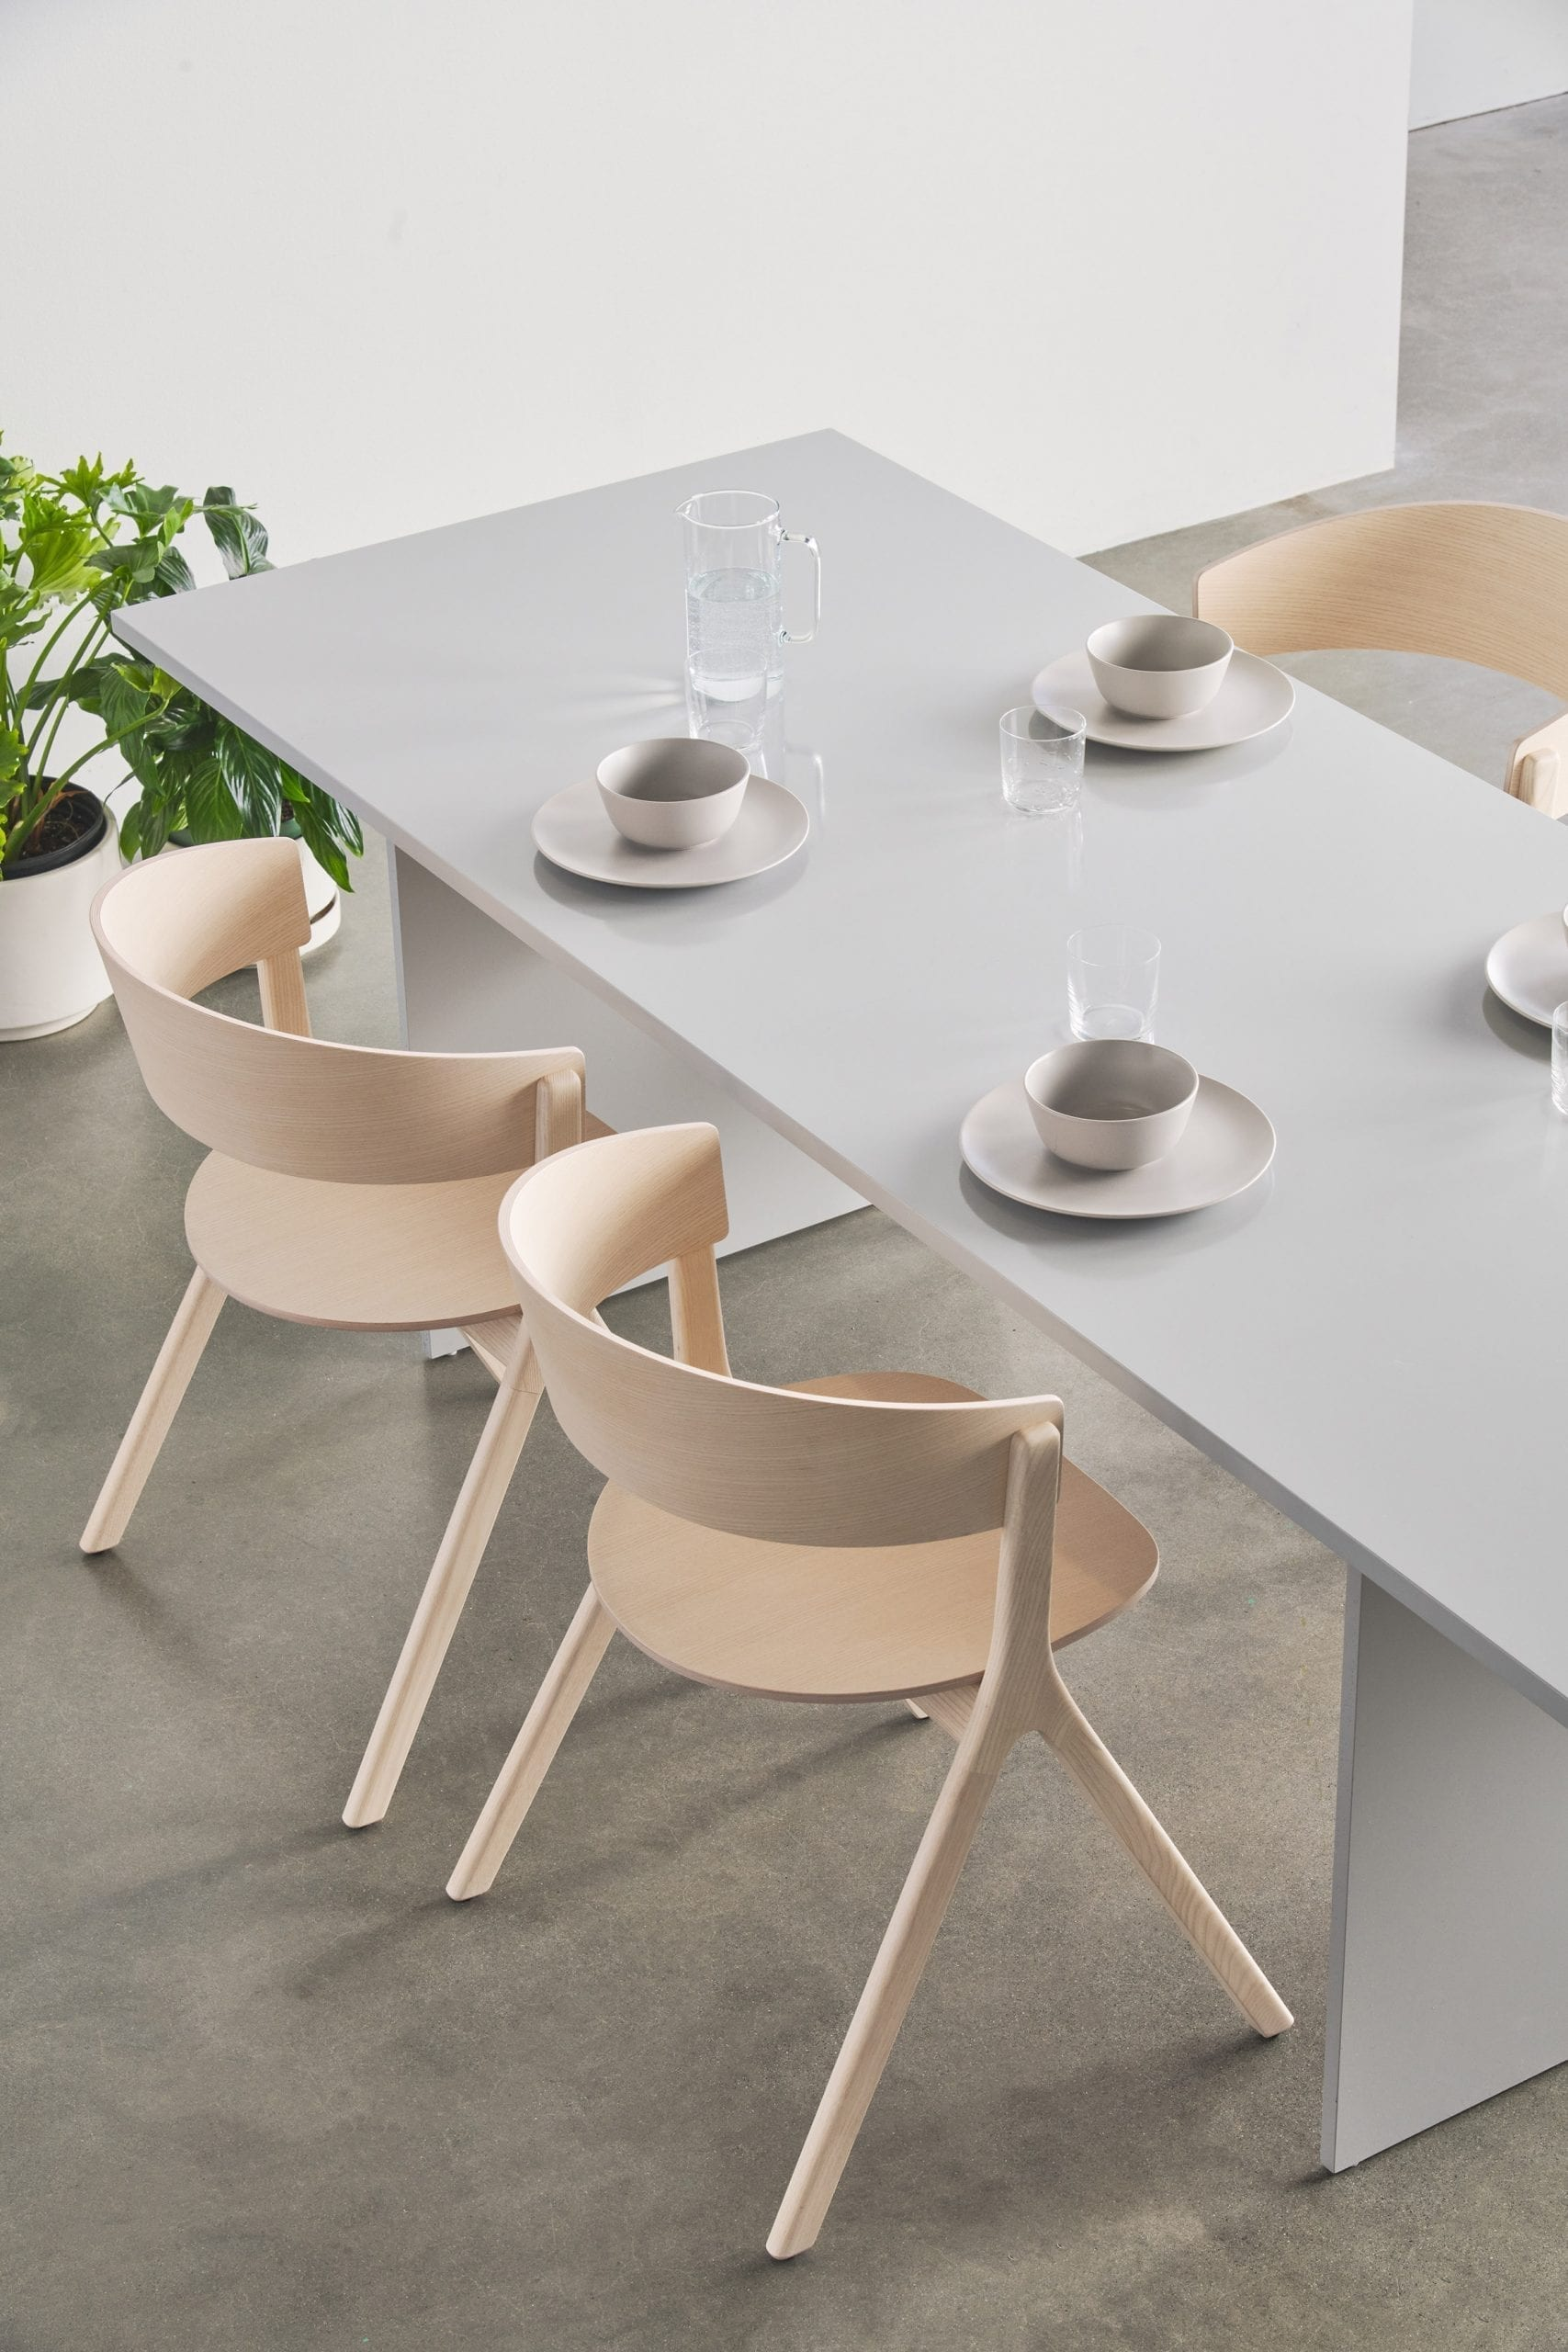 Wooden chairs around a grey table